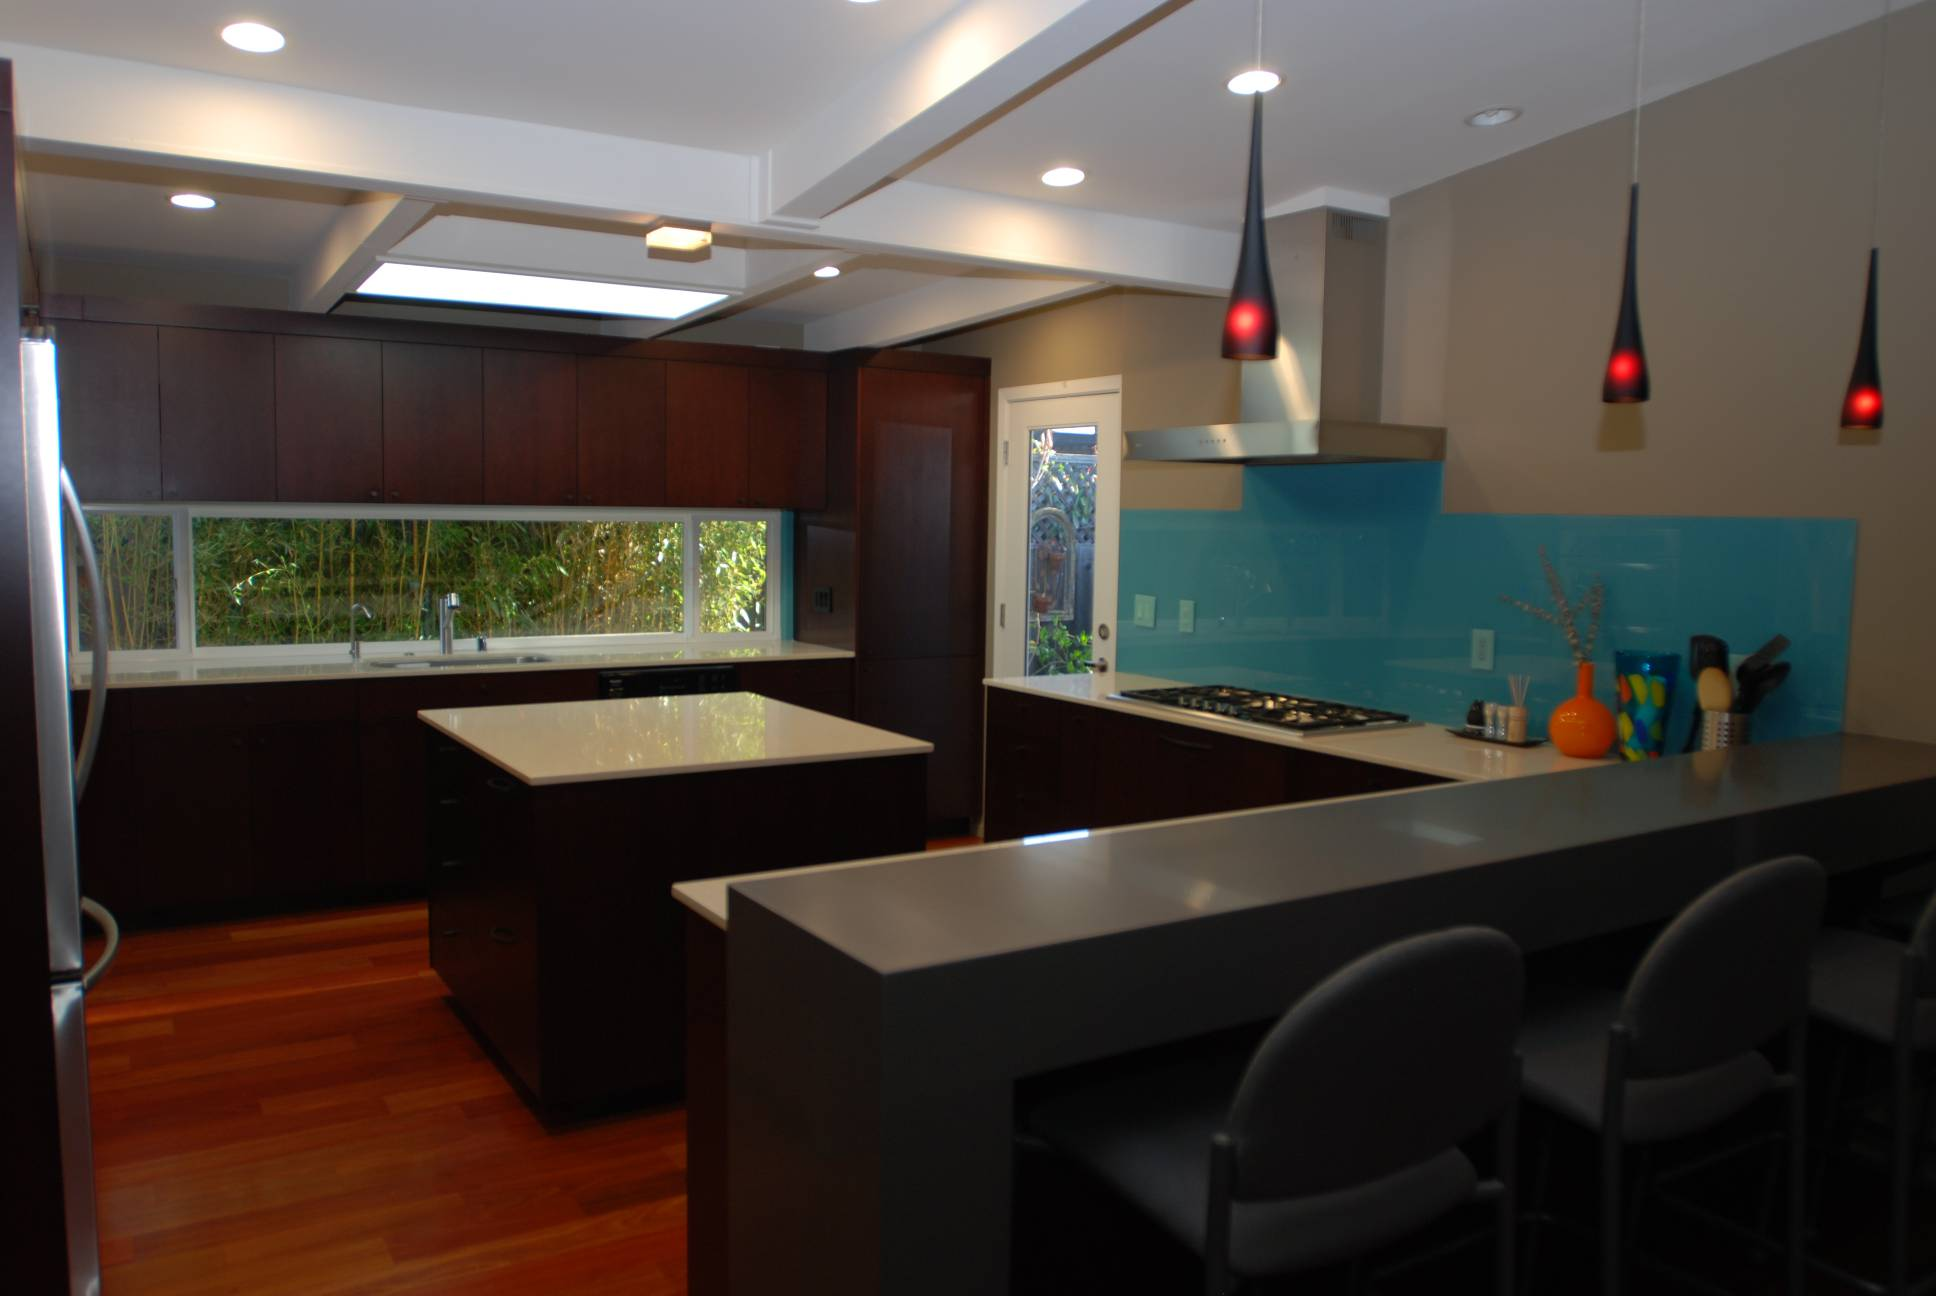 modern kitchen with white countertops bar stools and island, Interior work, Architect design, Mountain View